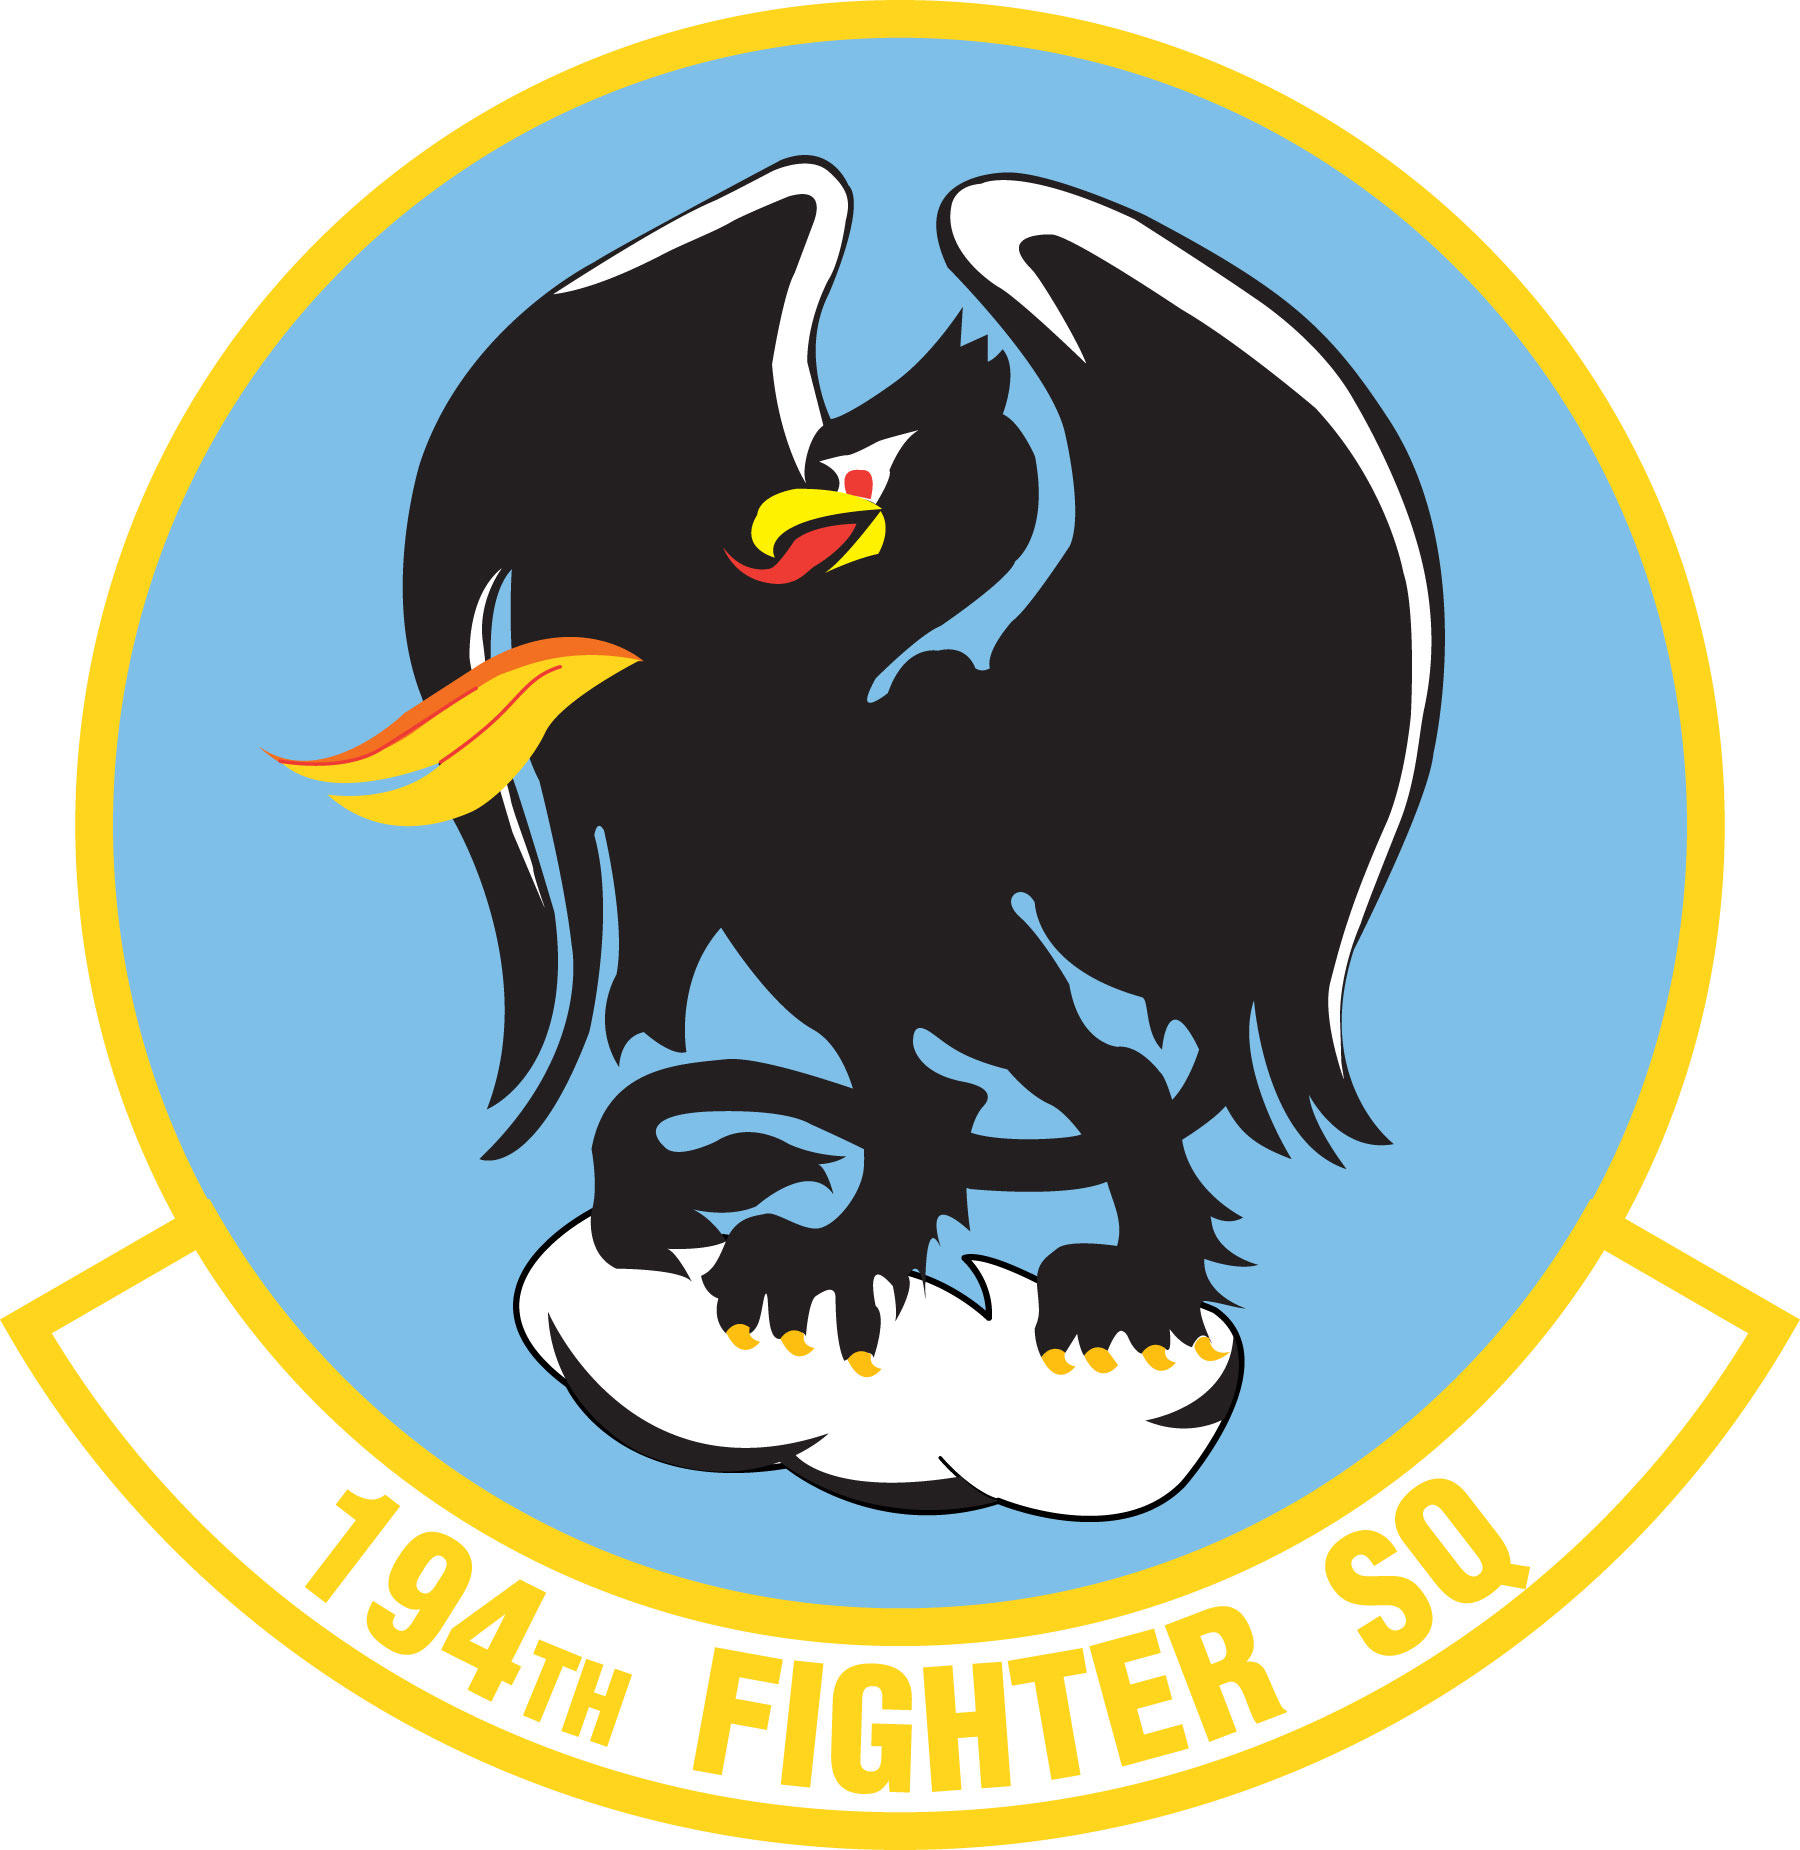 144 Fighter Wing.